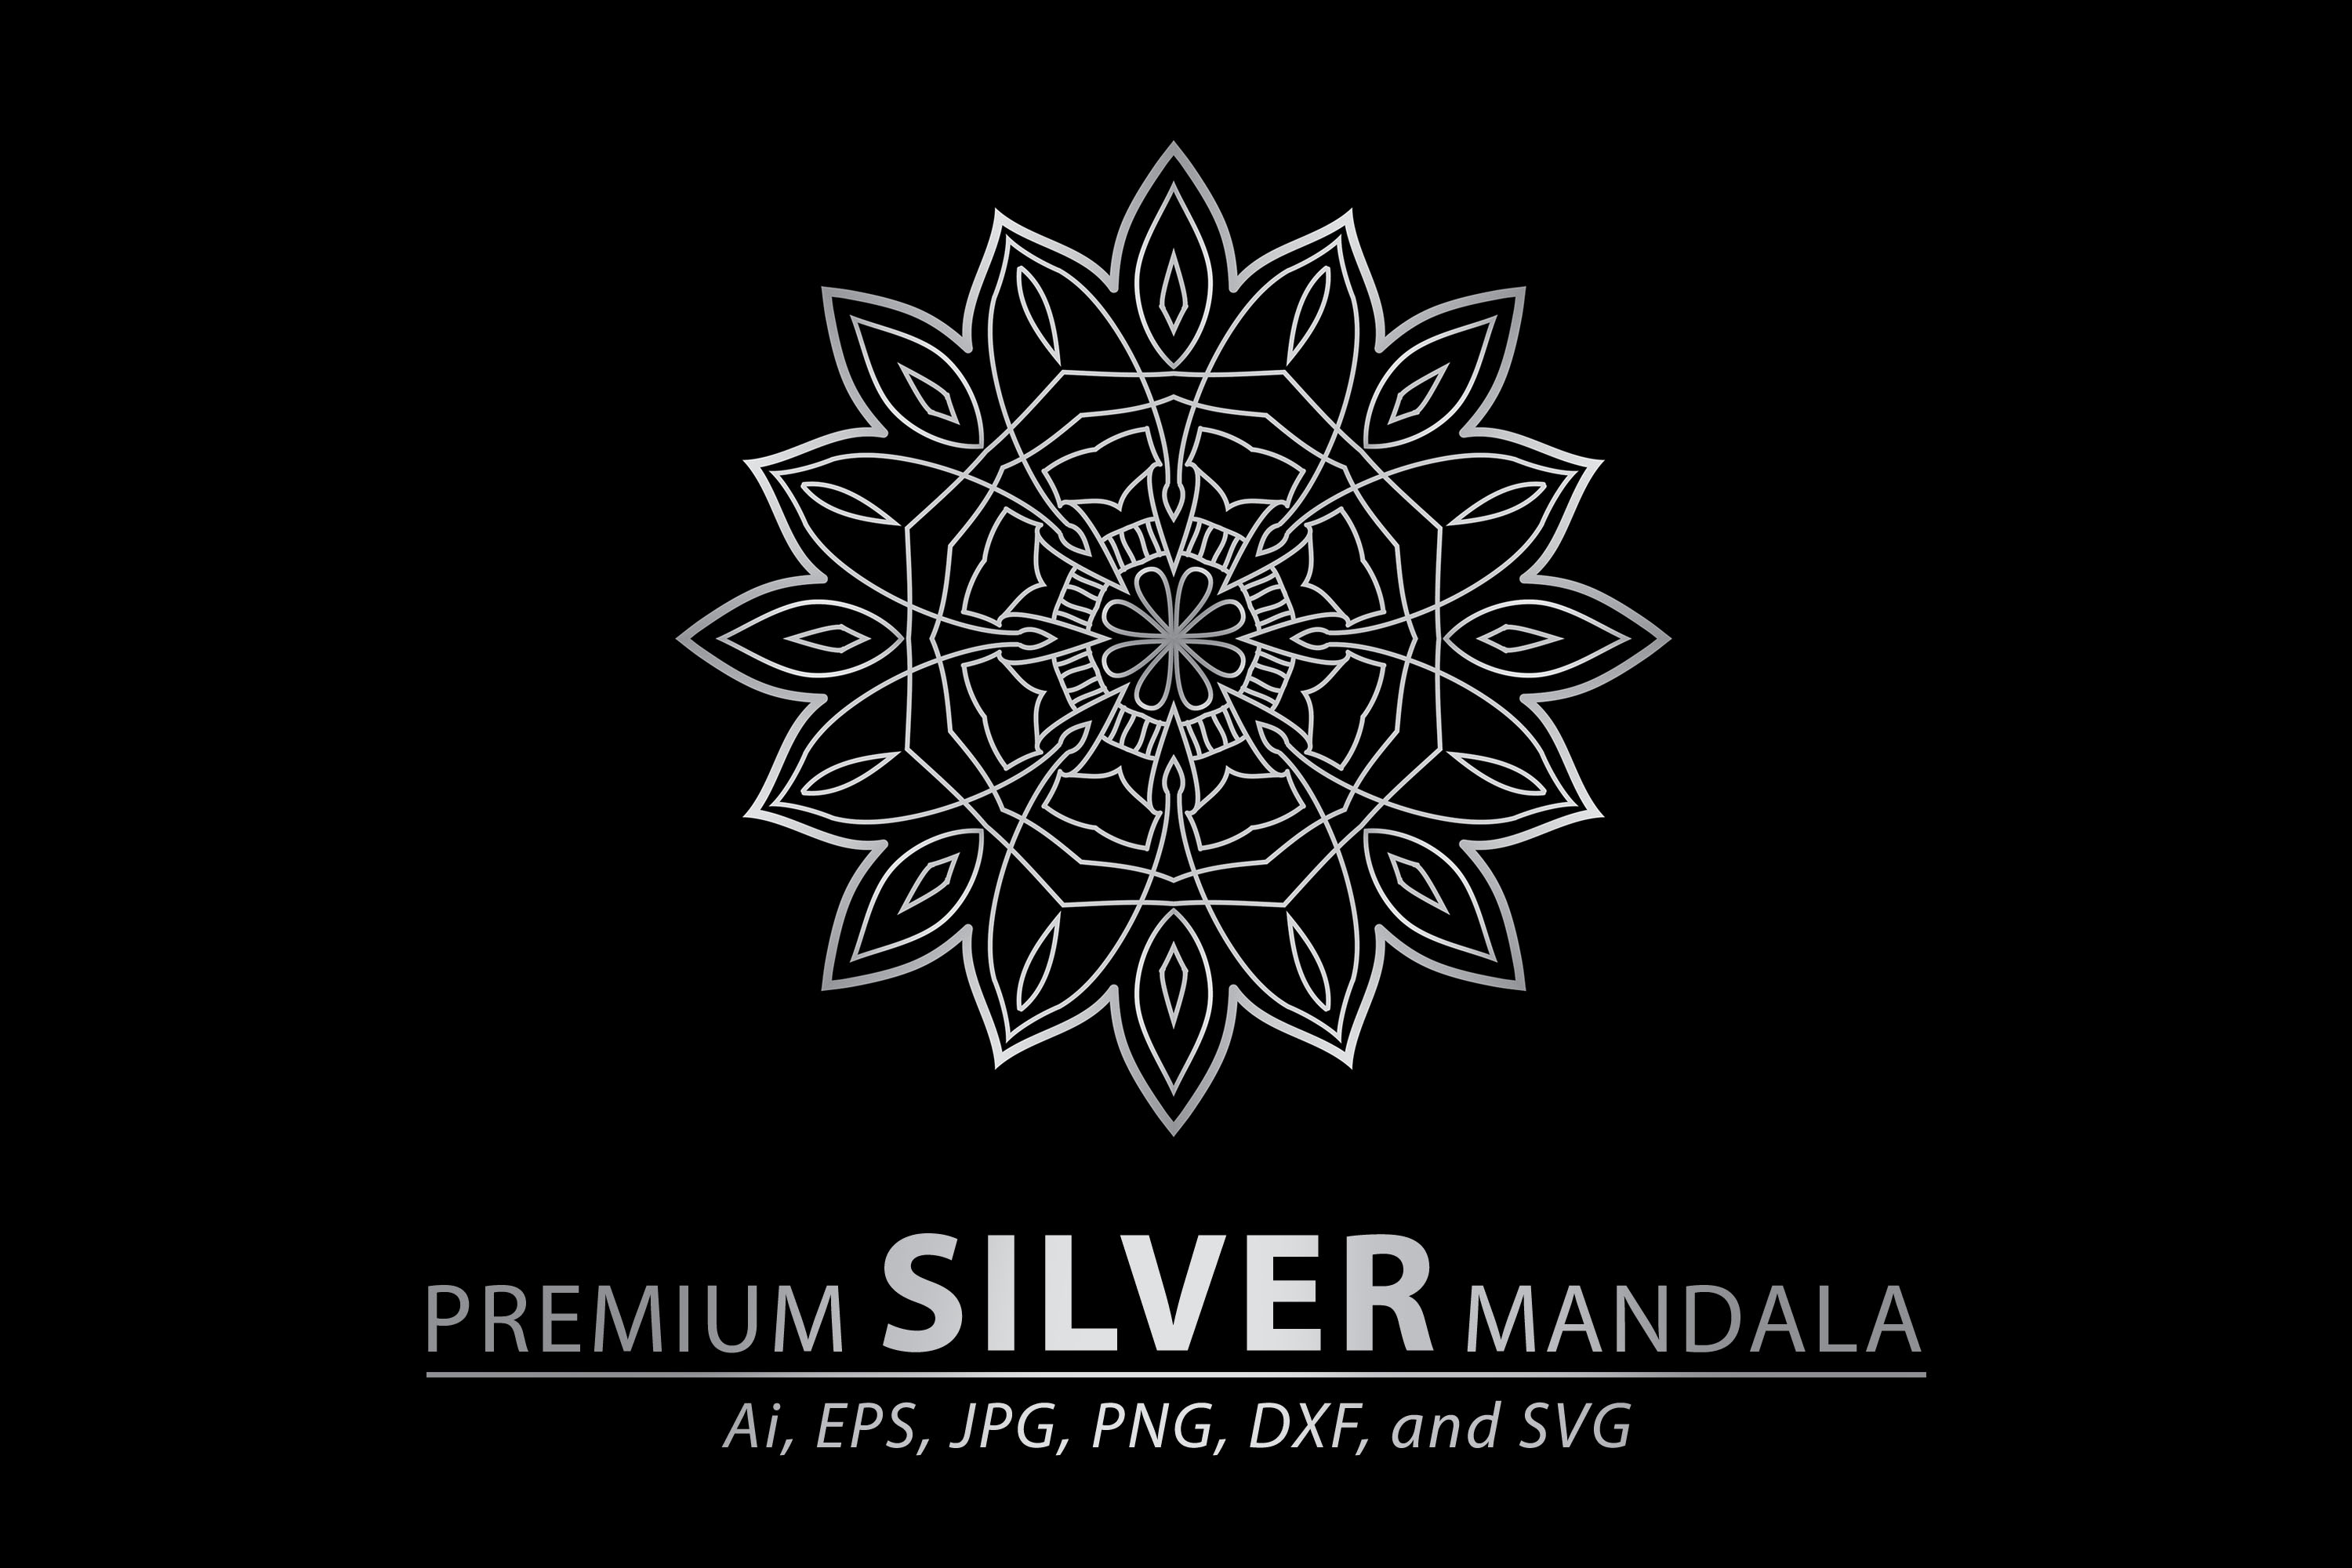 Download Free Premium Silver Mandala Vector Art Patter Graphic By for Cricut Explore, Silhouette and other cutting machines.